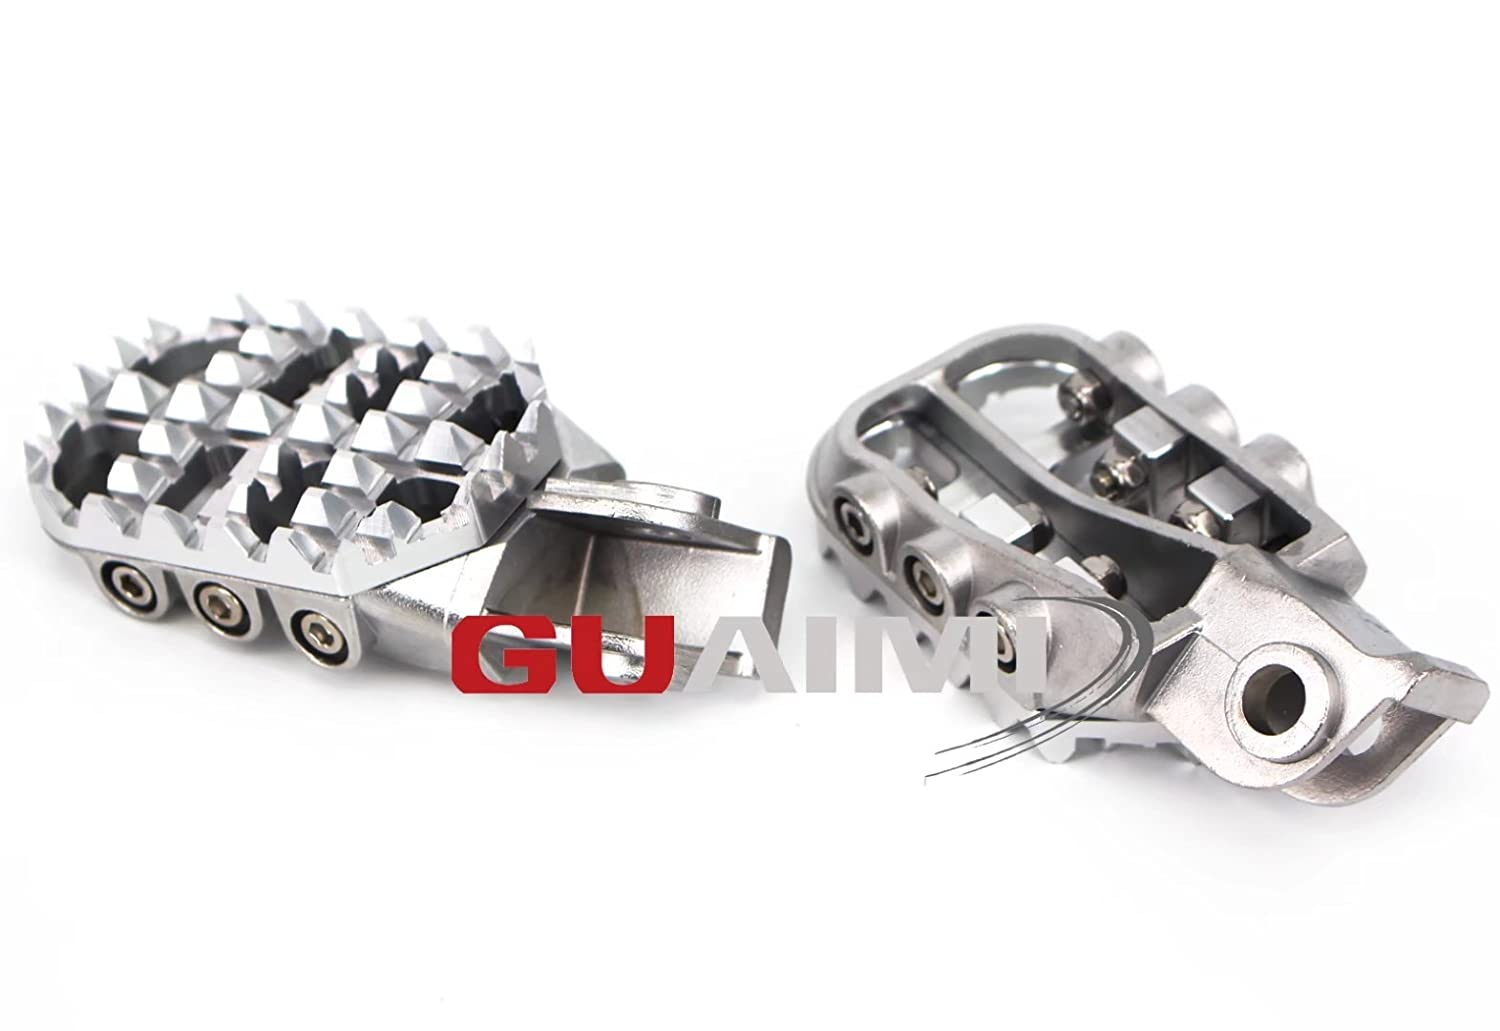 Motorcycle Scaling Foot Pegs Rests Pedals For KTM EXC EXC-F XC SX SX-F 50 125 250 350 450 525 530 660 950 990